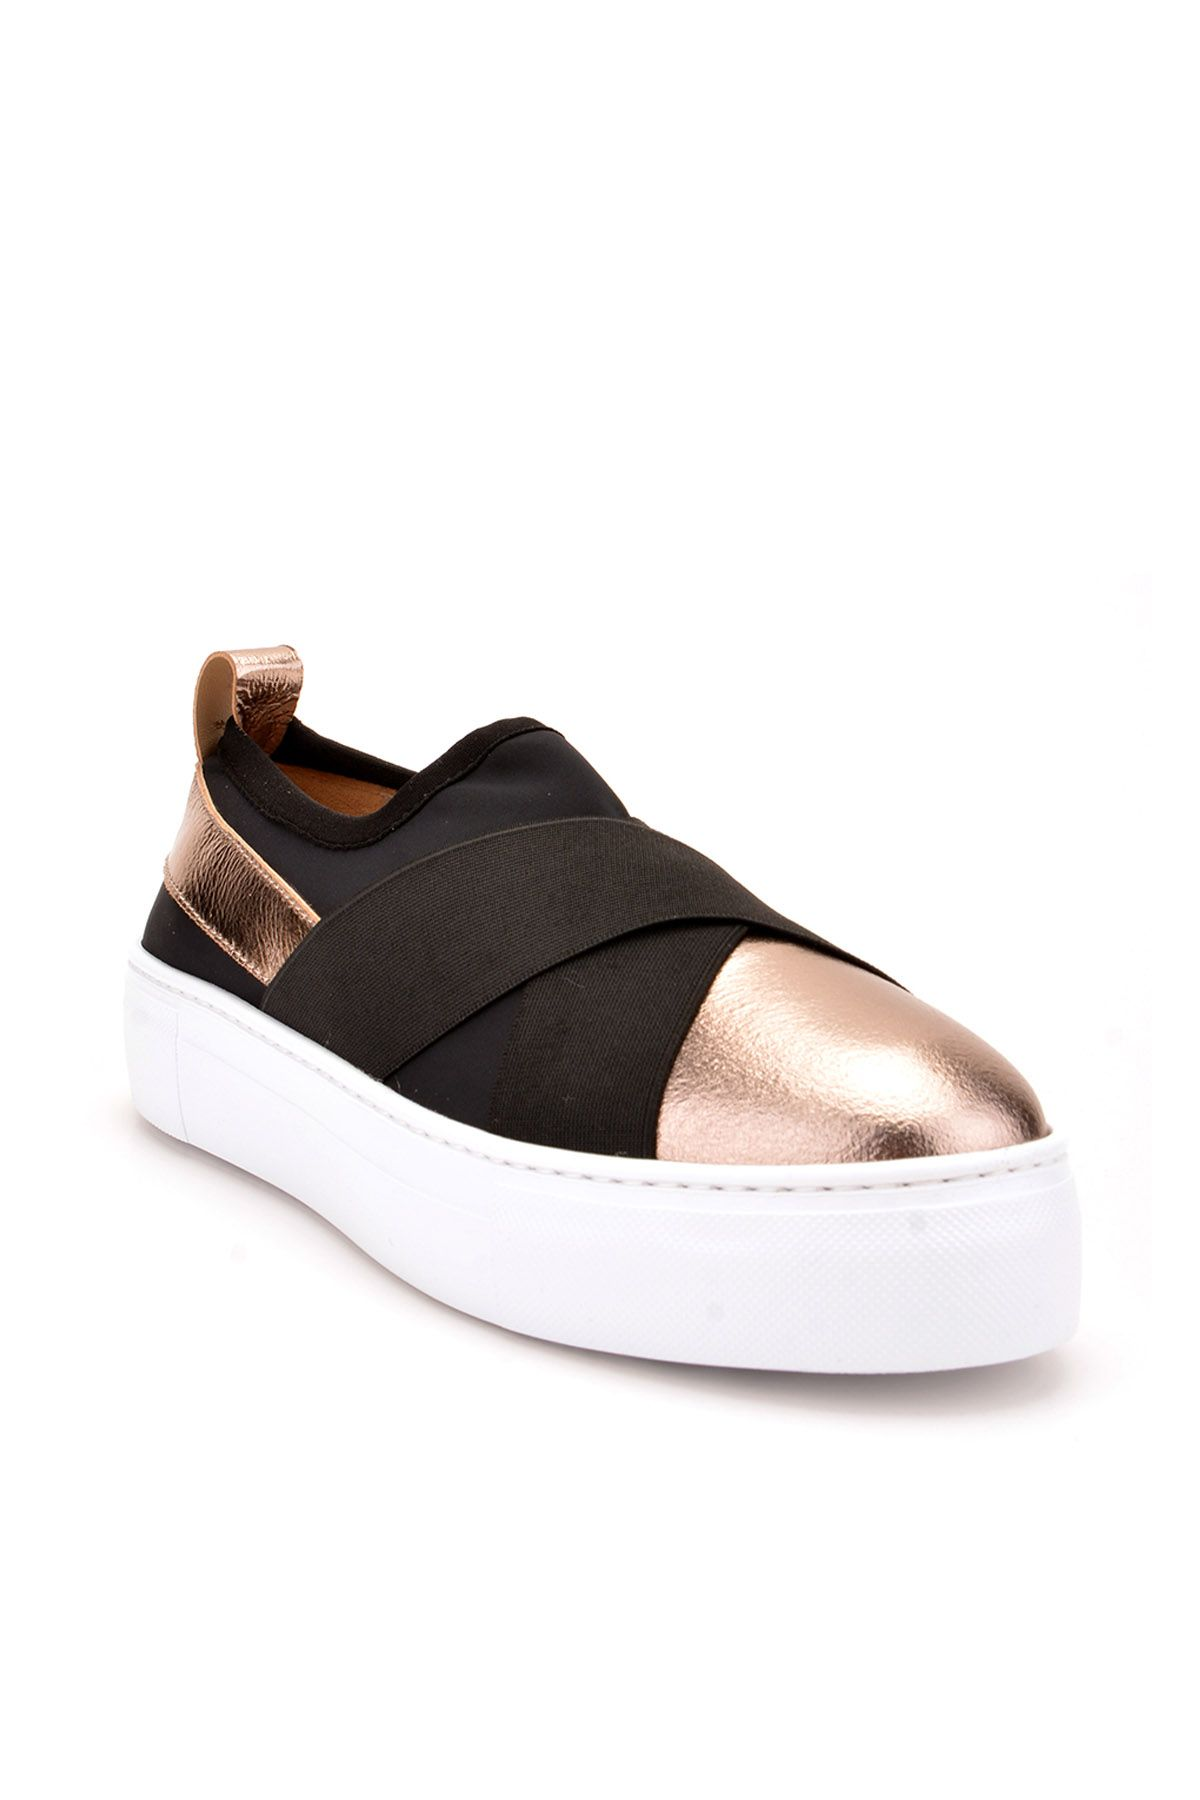 Pegia Voyage Casual Shoes From Genuine Leather REC-011 Bronze